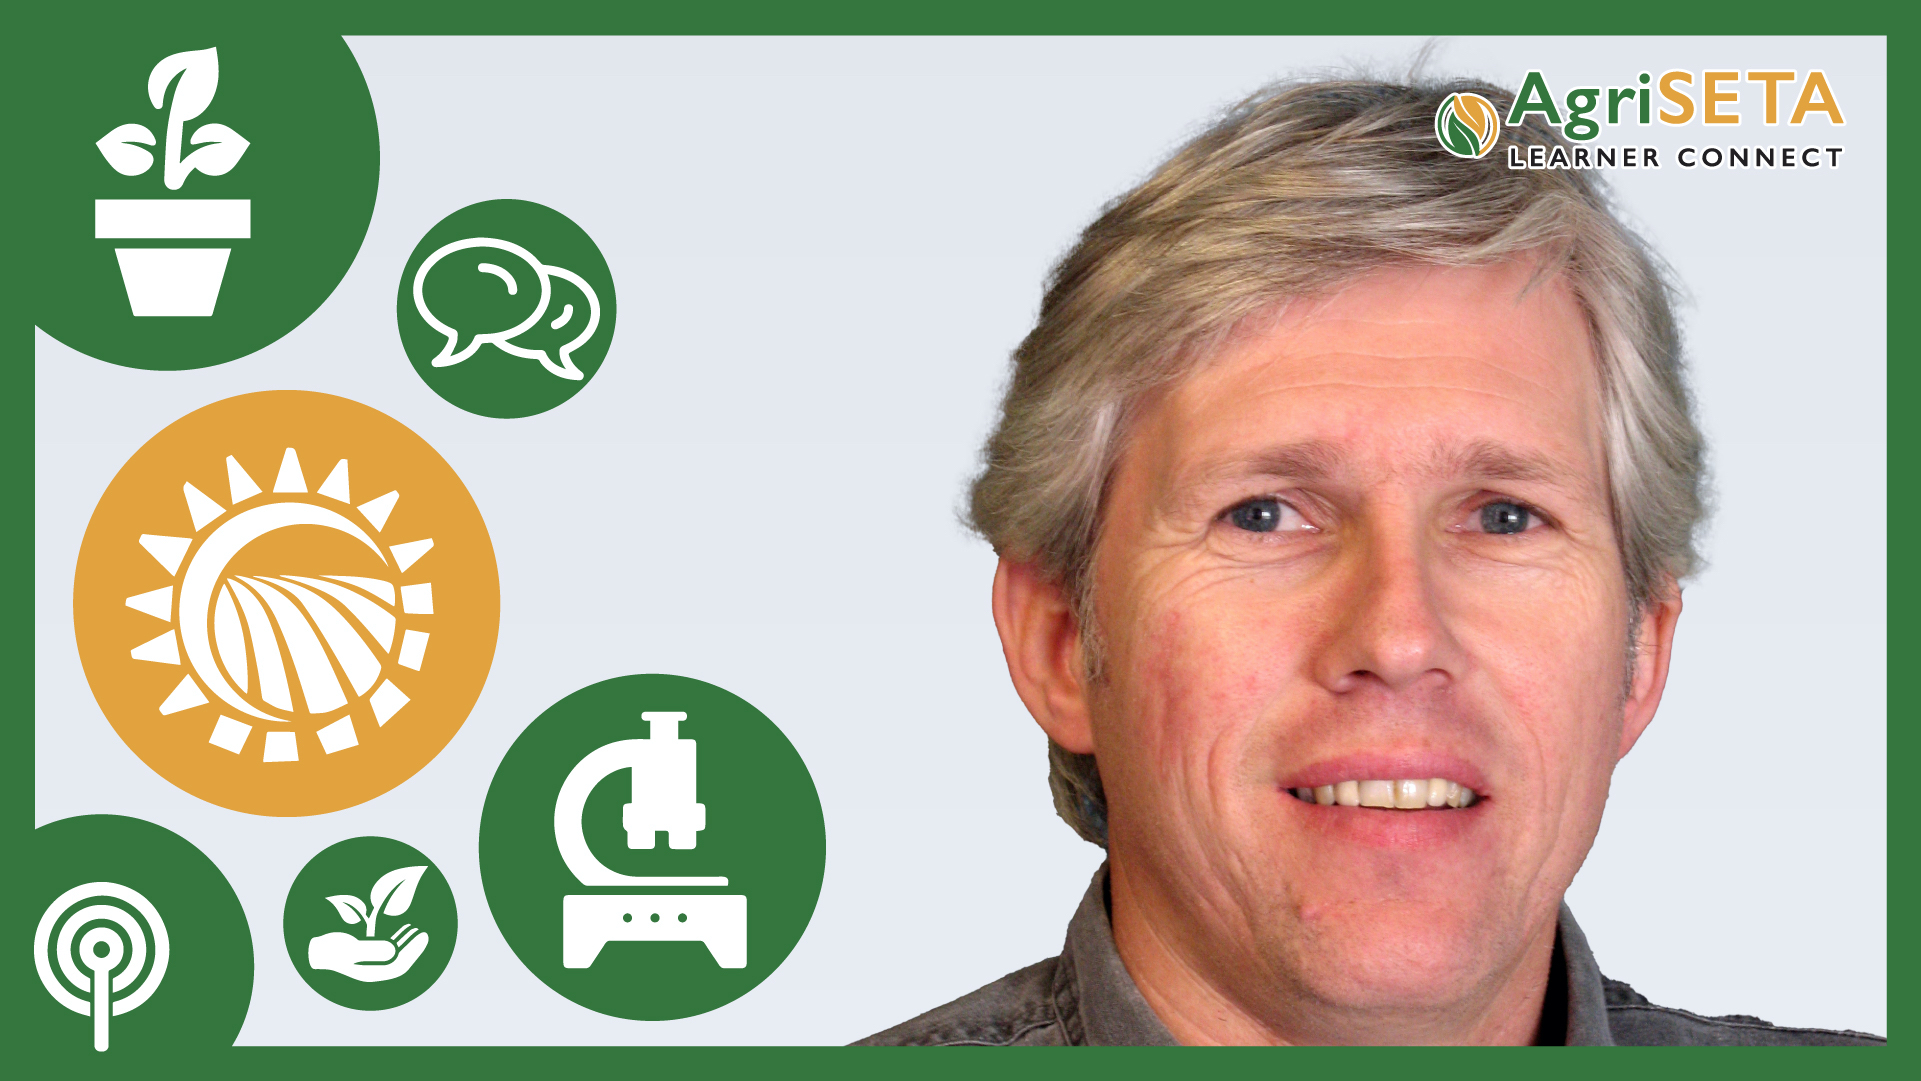 DrGarryPaterson is a soil scientist and researcher at the Agricultural Research Council.